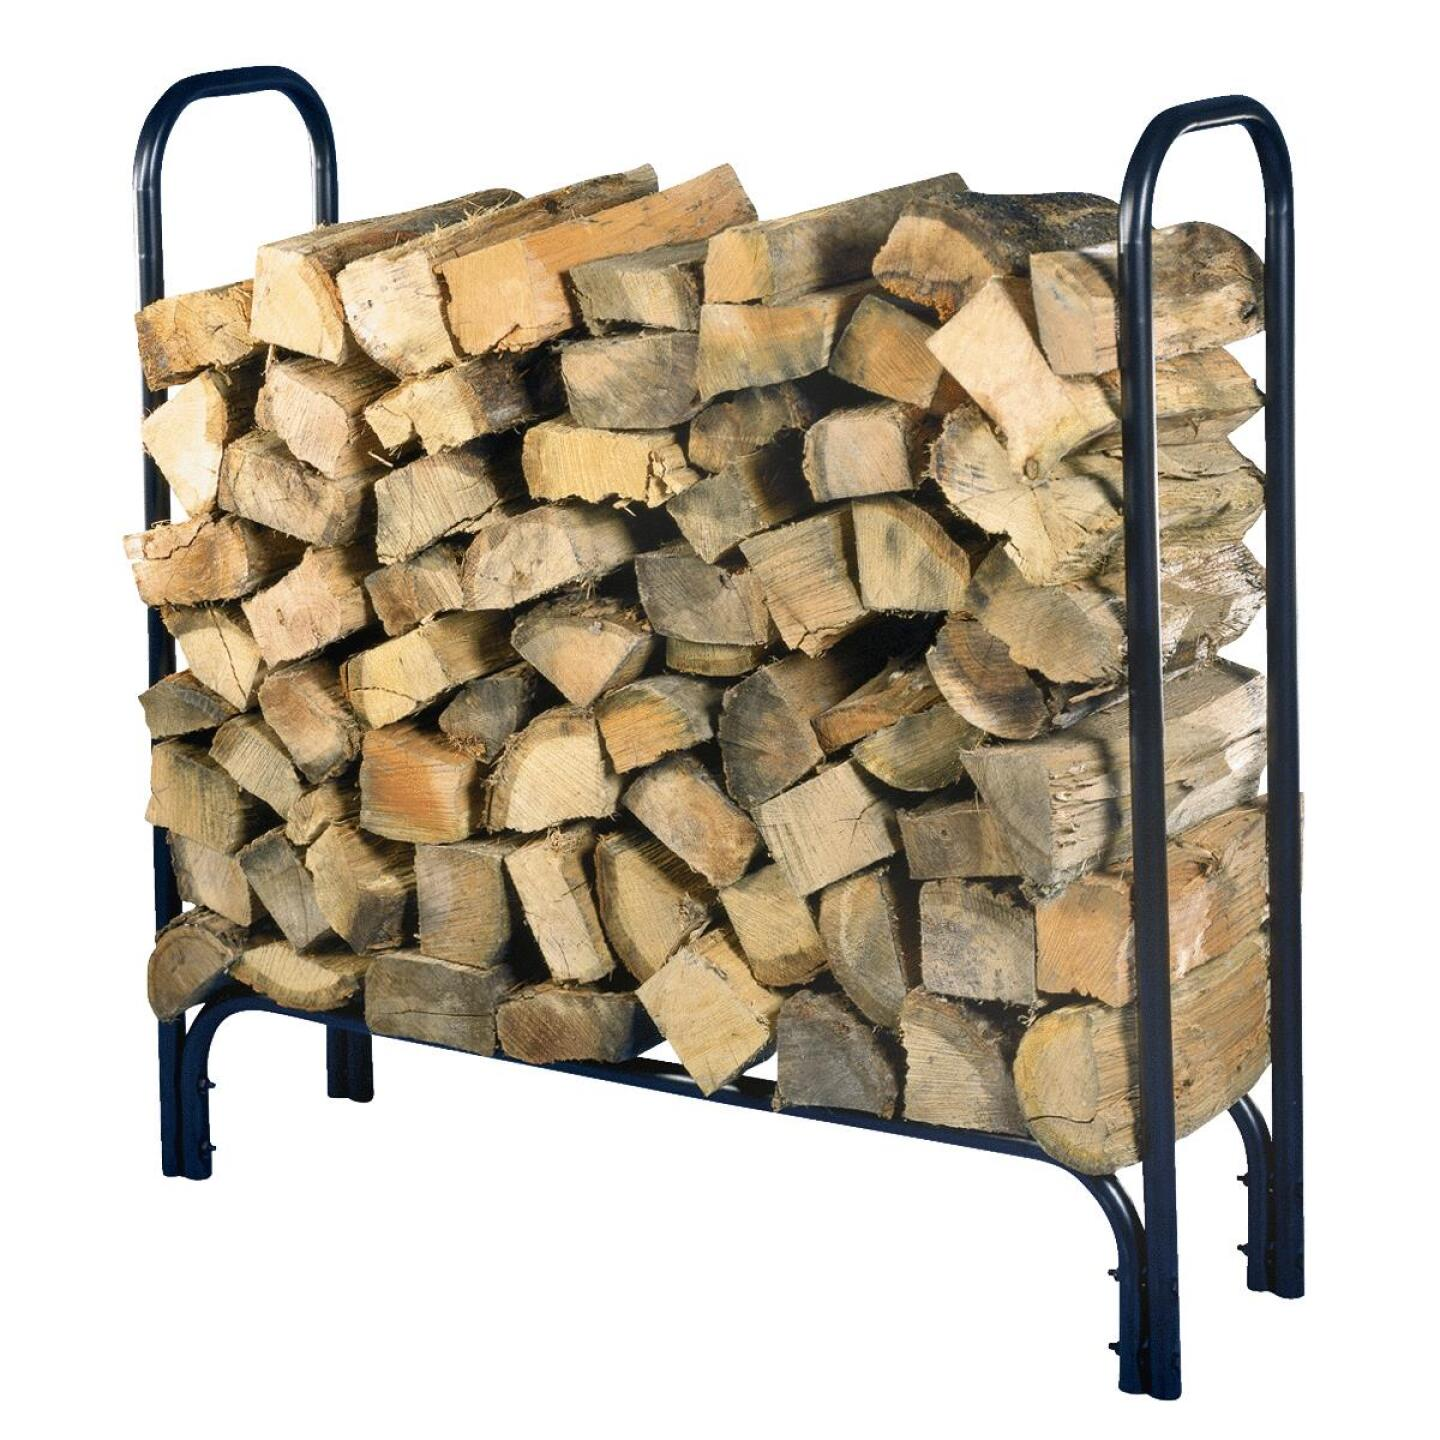 Home Impressions 4 Ft. Black Tubular Log Rack Image 1